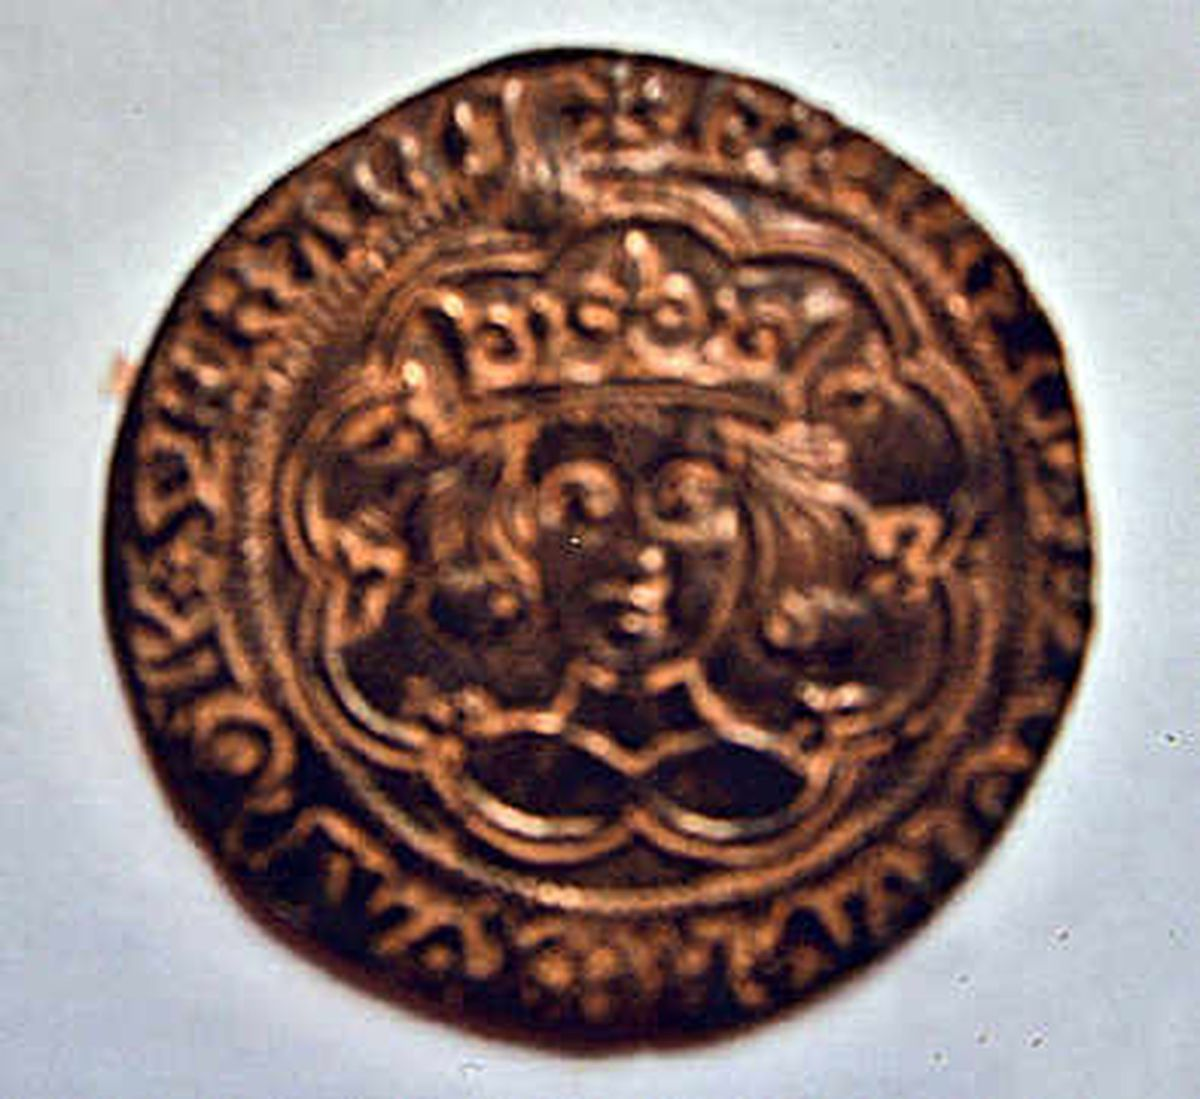 One of the coins found during the hunt for keys